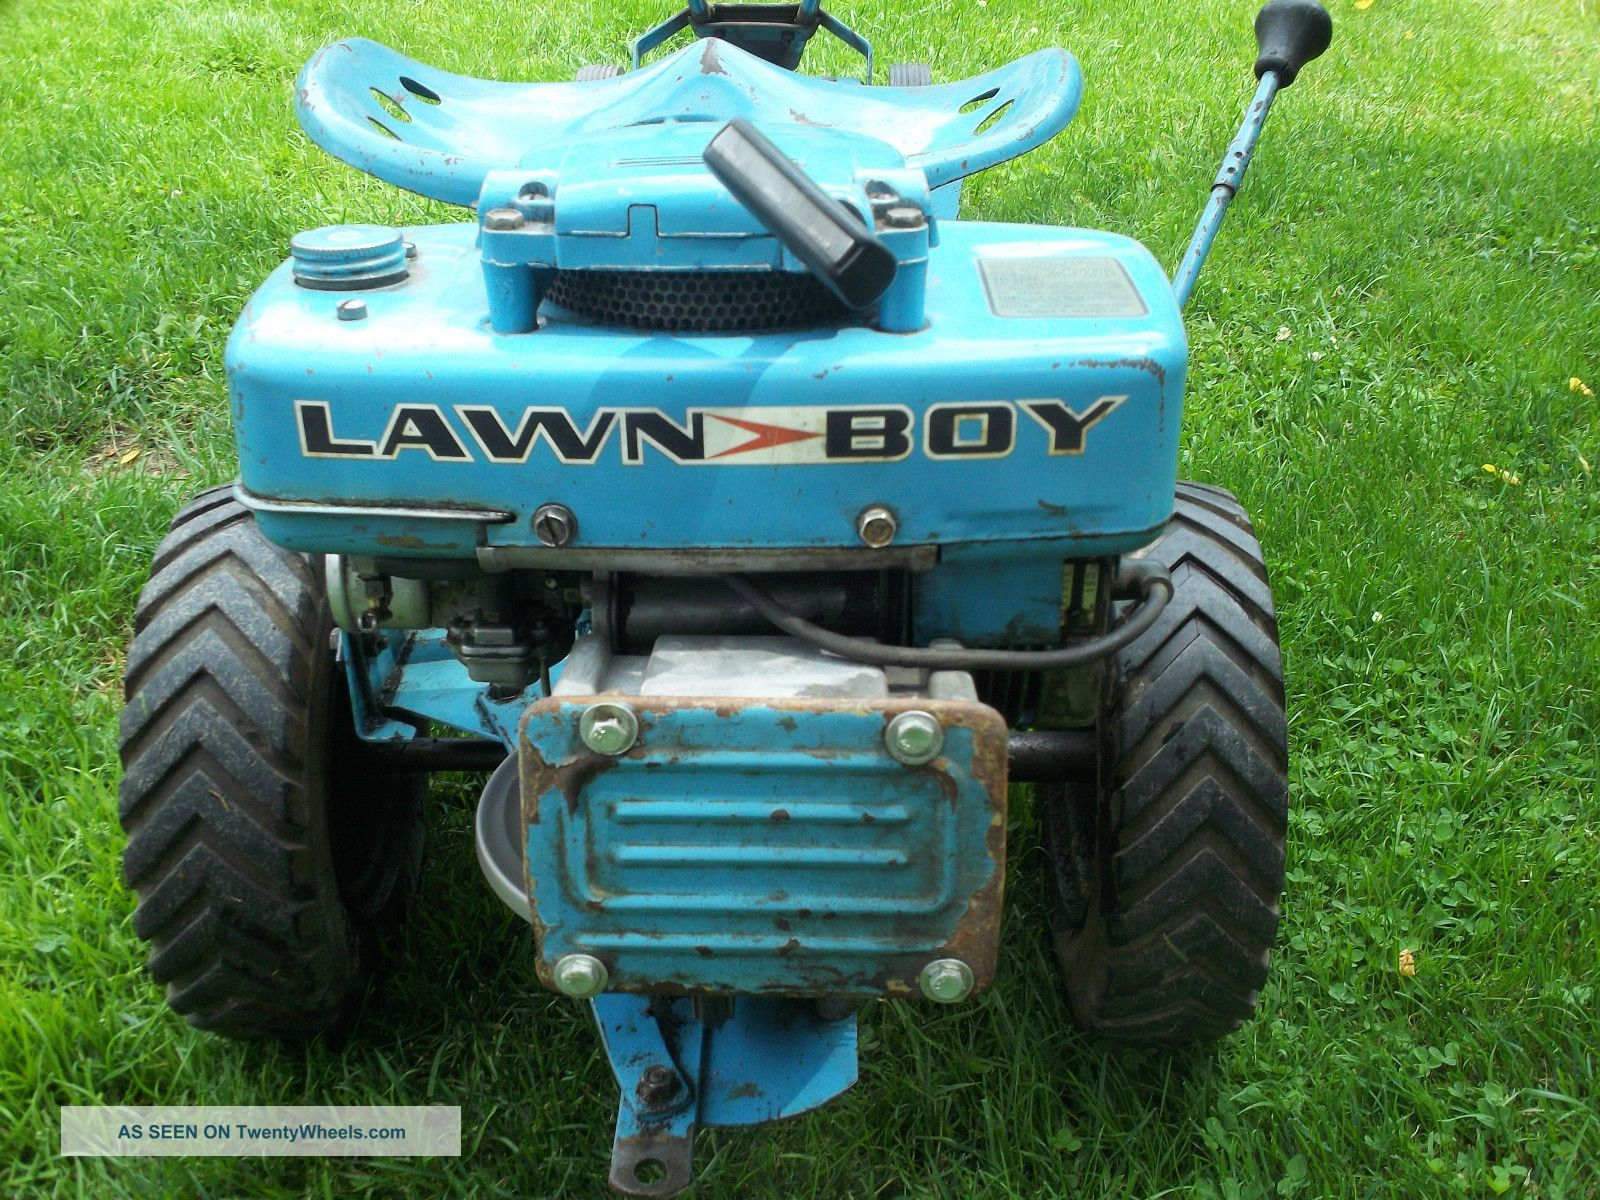 Old Riding Lawn Mowers : Blue lawn boy loafer riding mower tractor